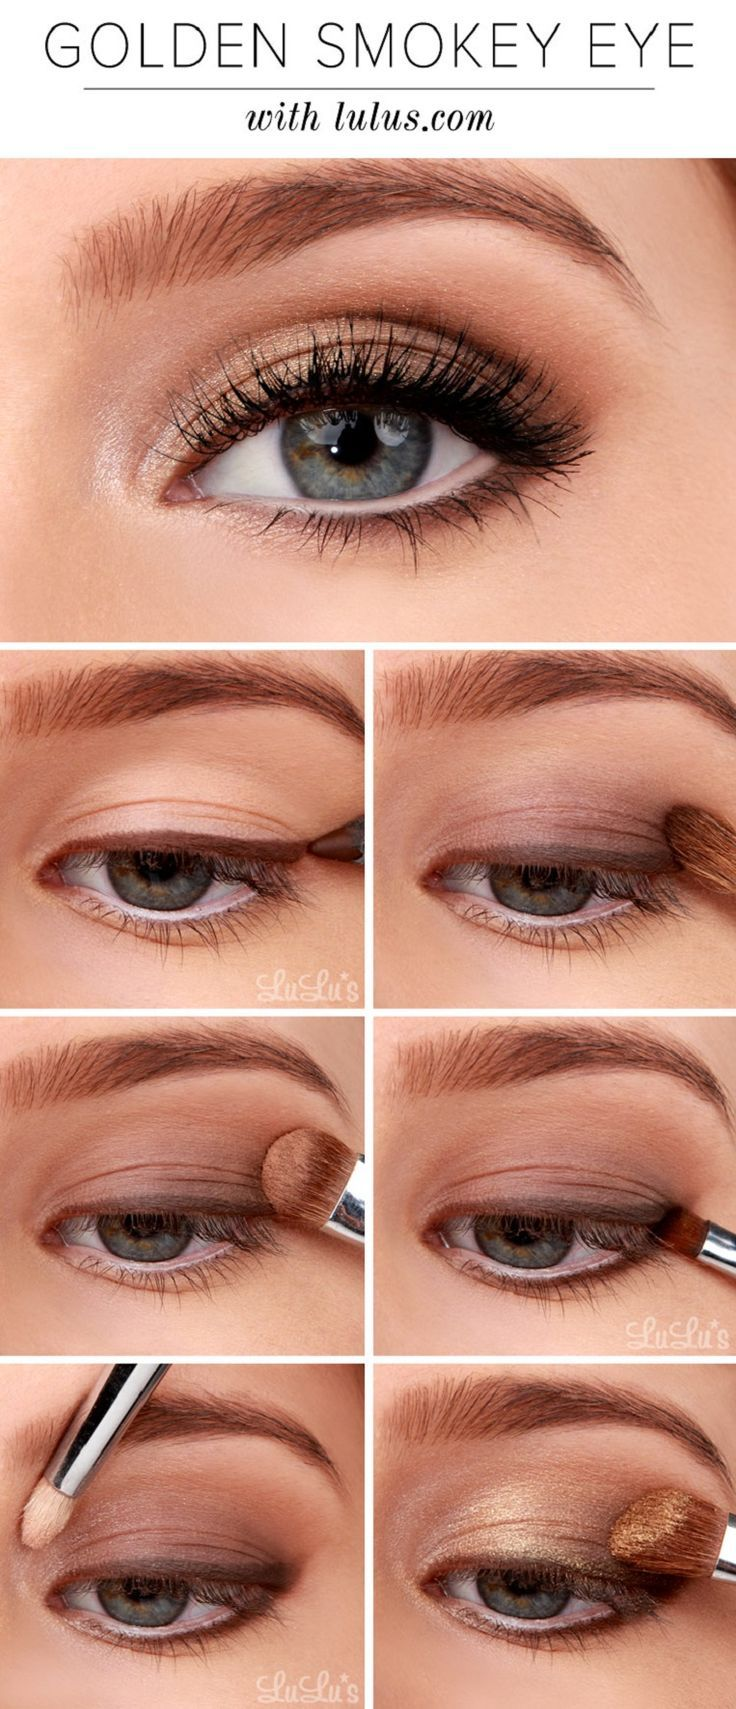 Golden Smokey Eye Makeup Tutorial